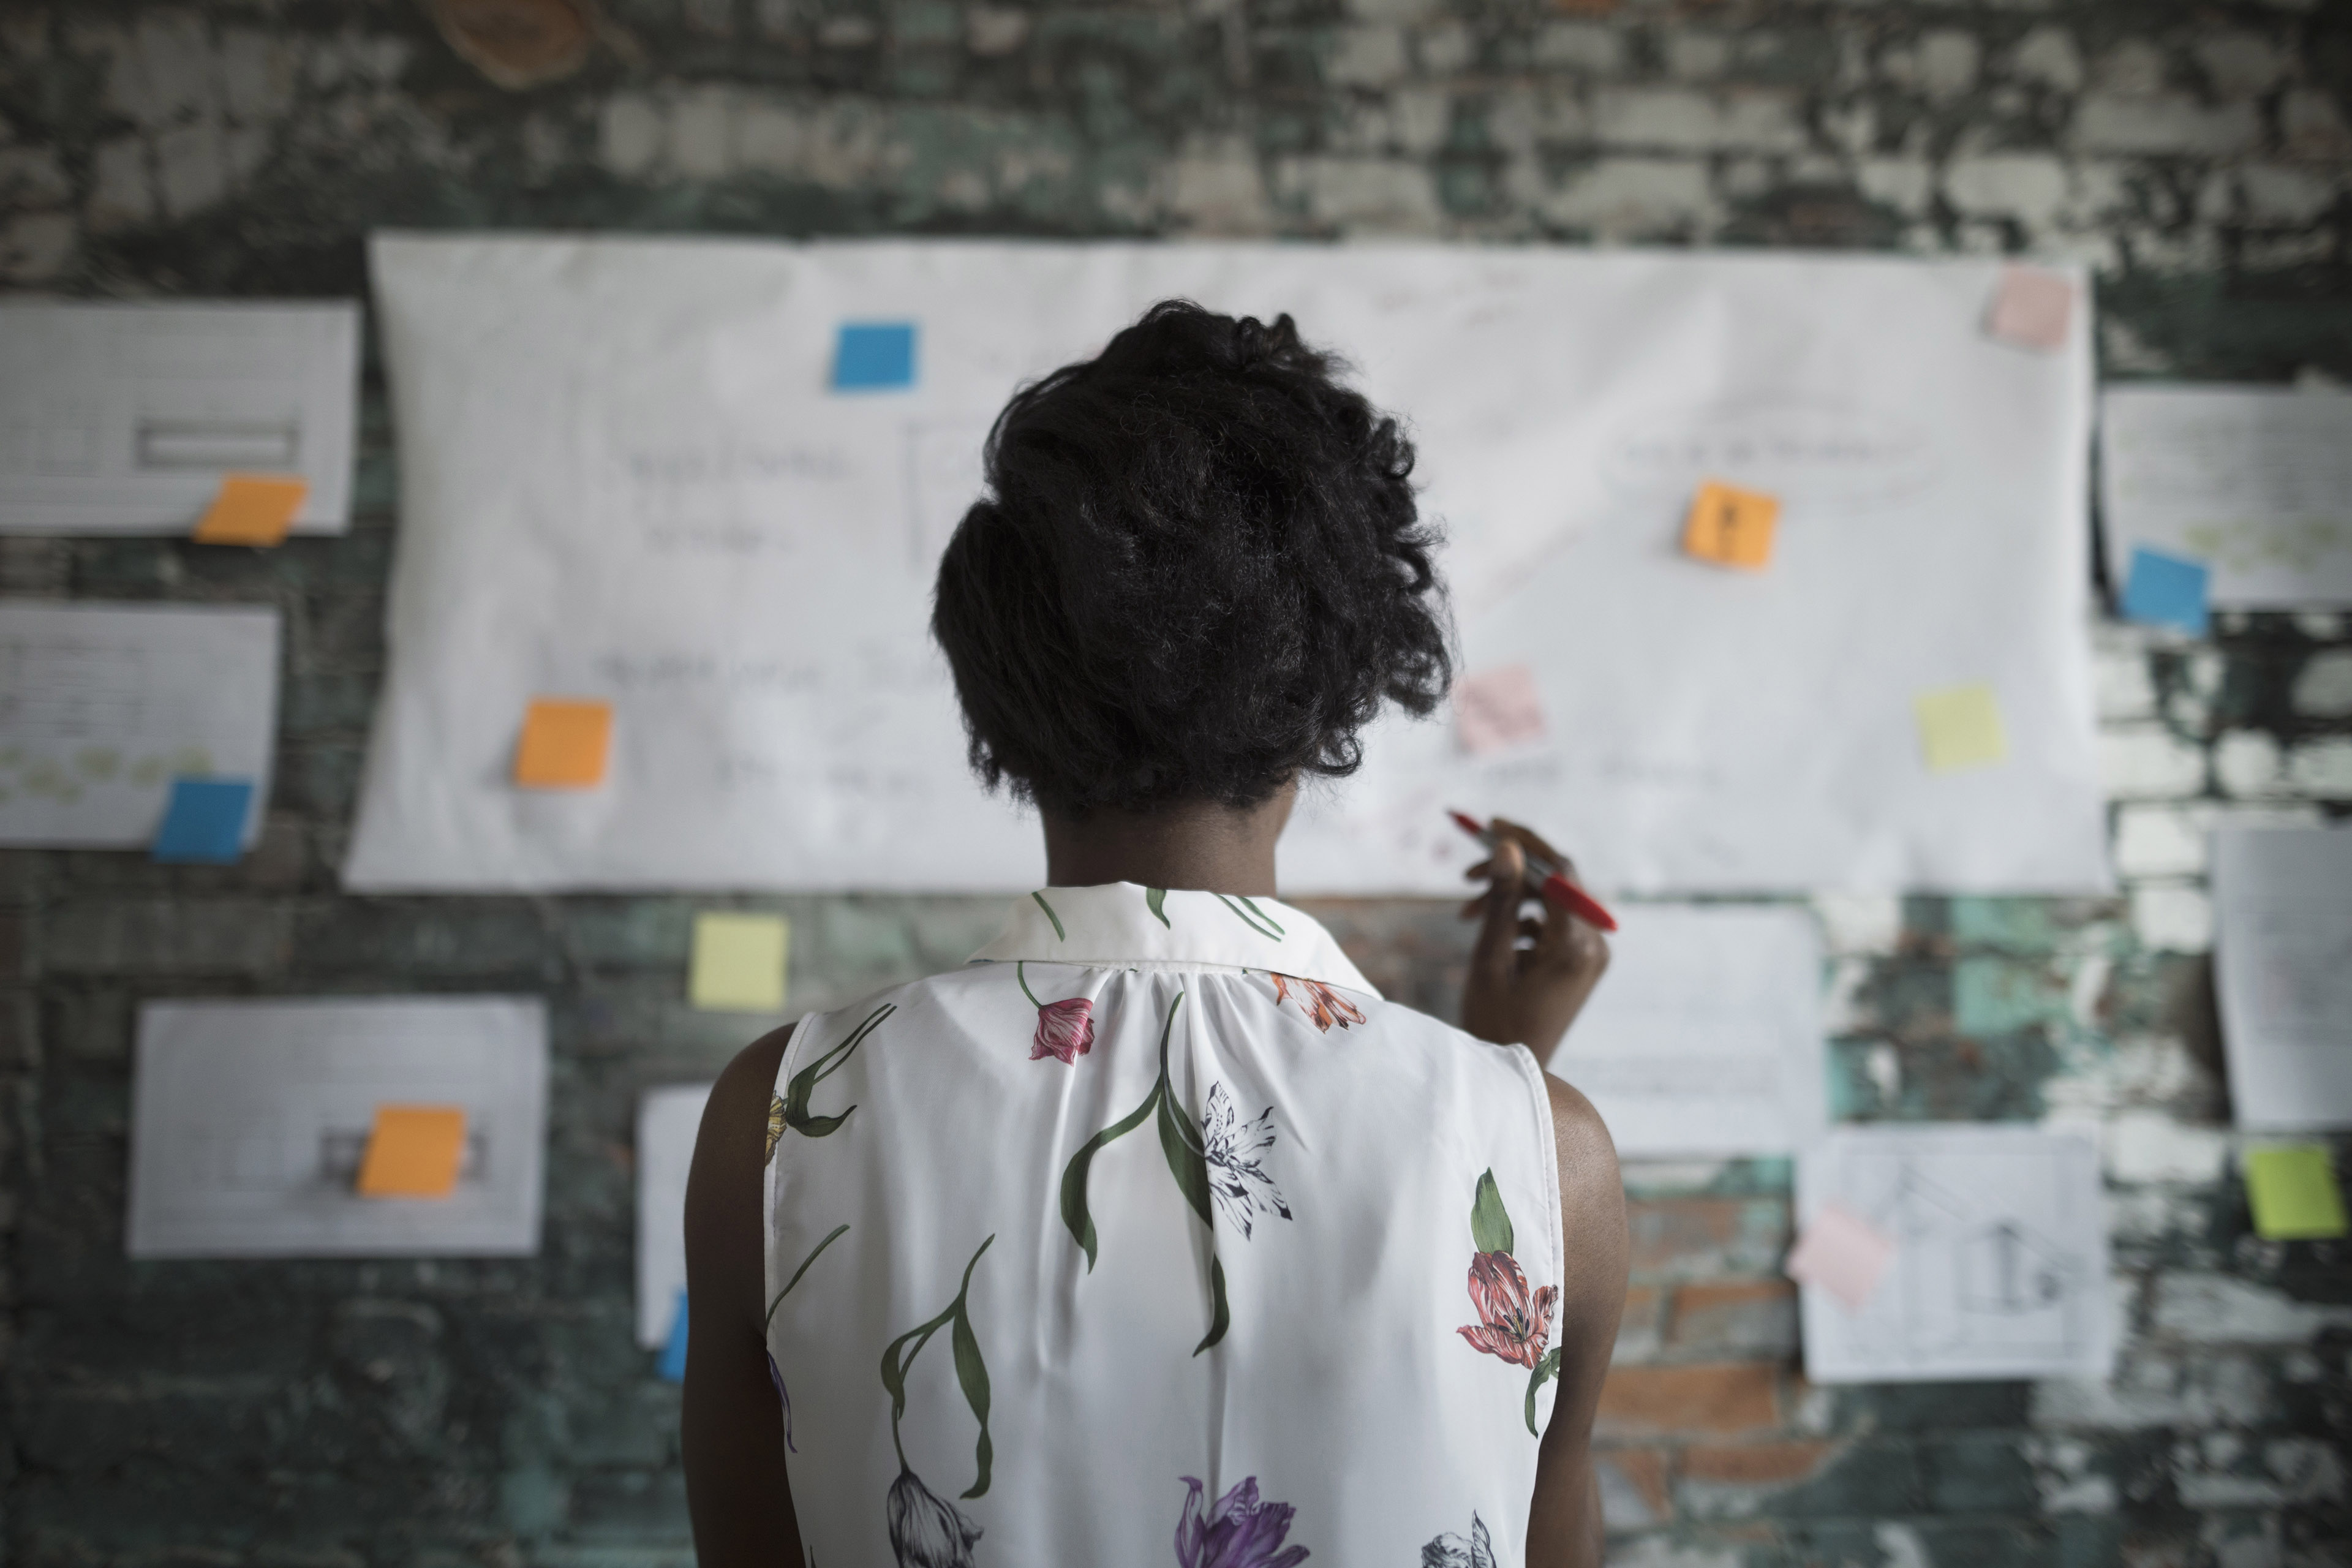 Woman looking at mind map on wall